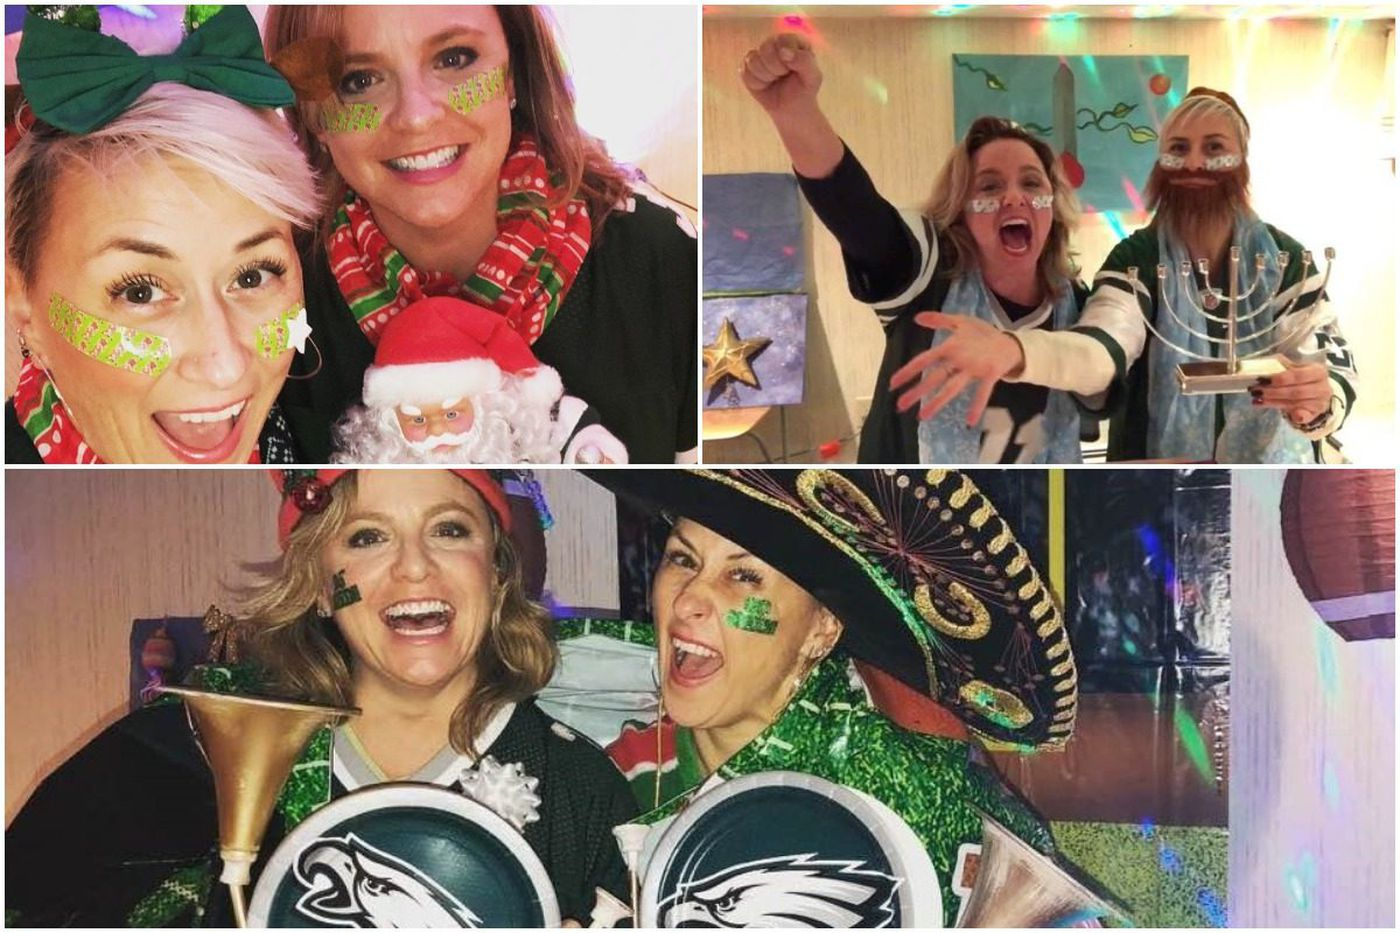 Girls Gone Green: Comedians cheer on the Eagles through song parodies | We the People